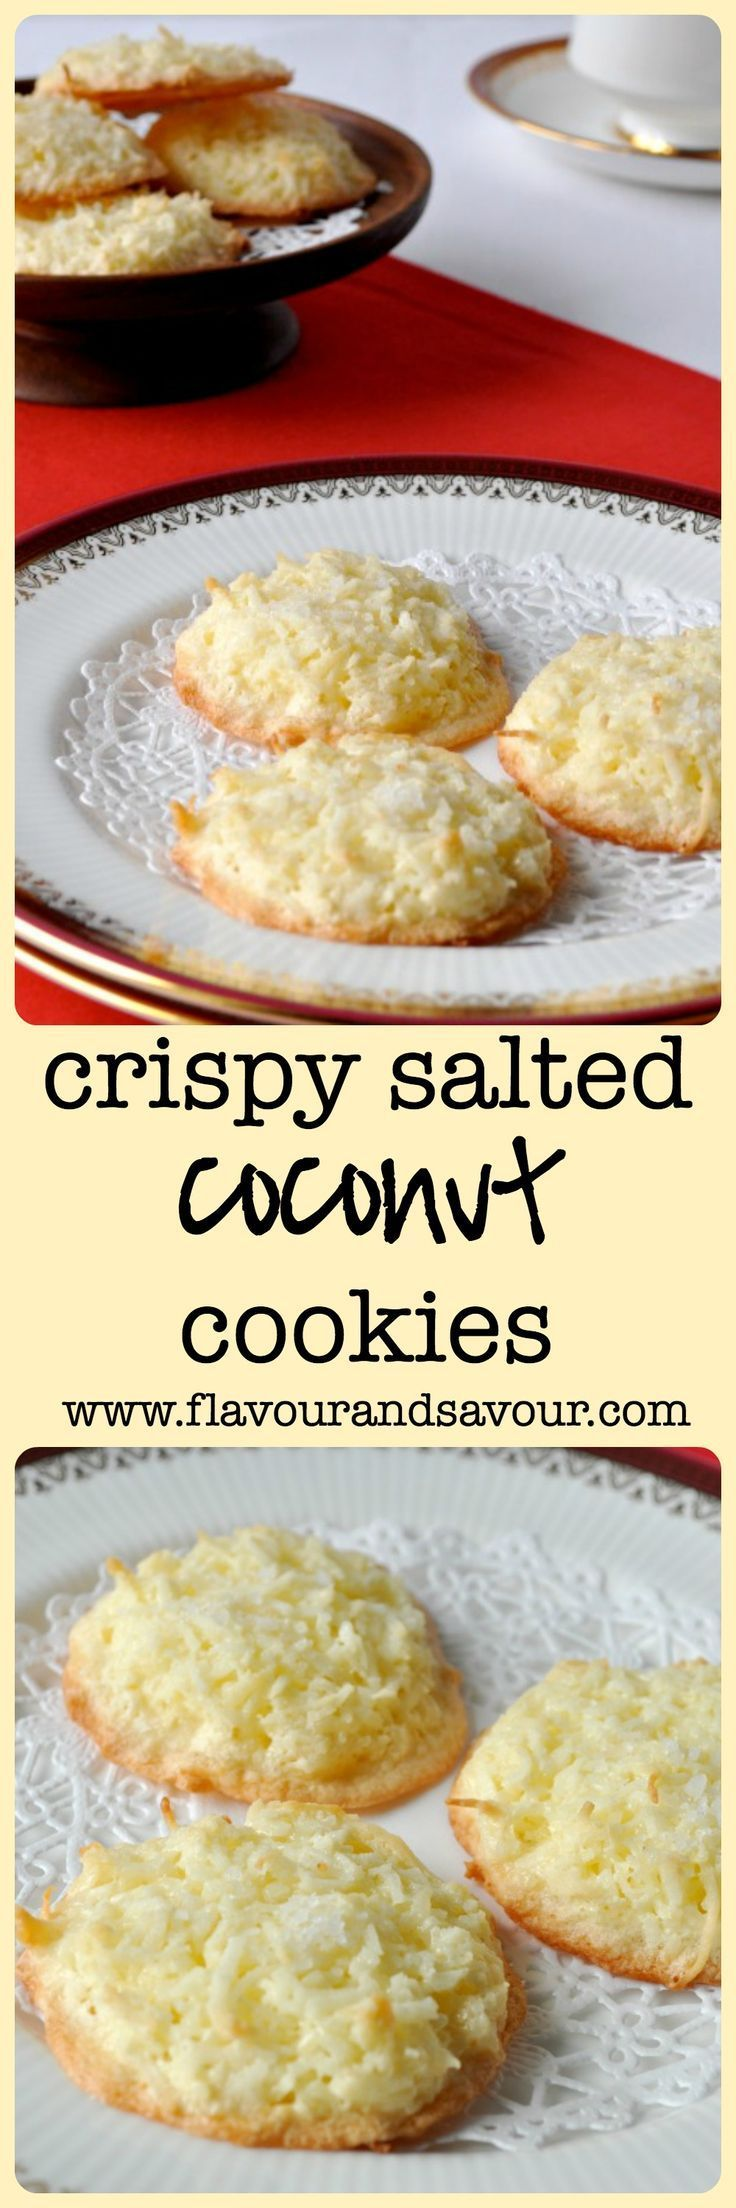 Crispy Salted Coconut Cookies. Quick and easy. Gluten free. Super popular.